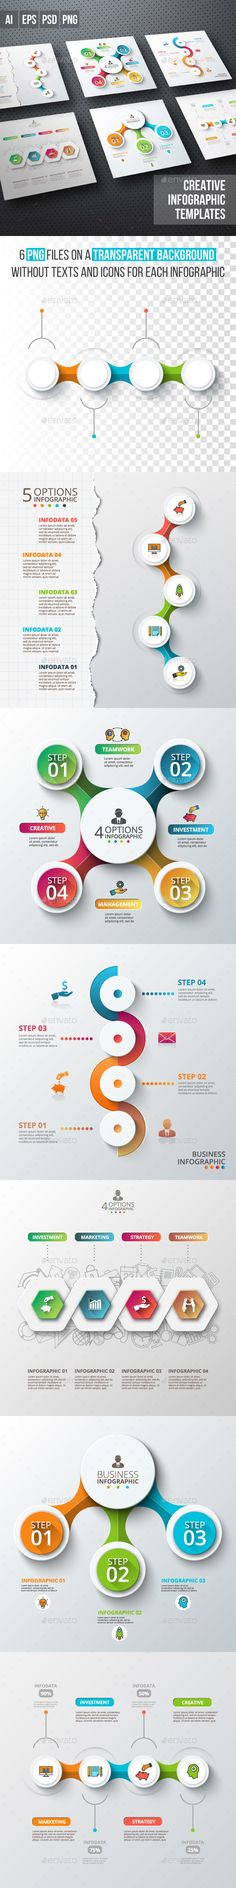 Business infographic diagrams. Download: https://graphicriver.net/item/business-infographic-diagrams-v03/18747565?ref=thanhdesign